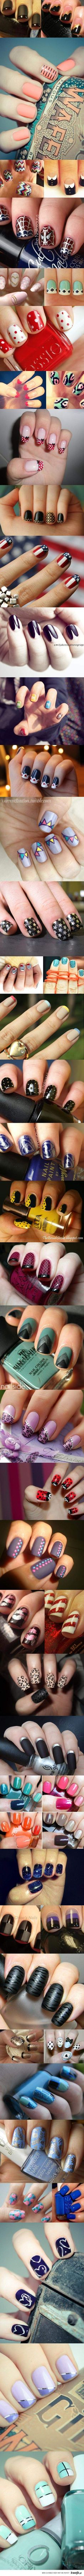 These are really good ideas for nails